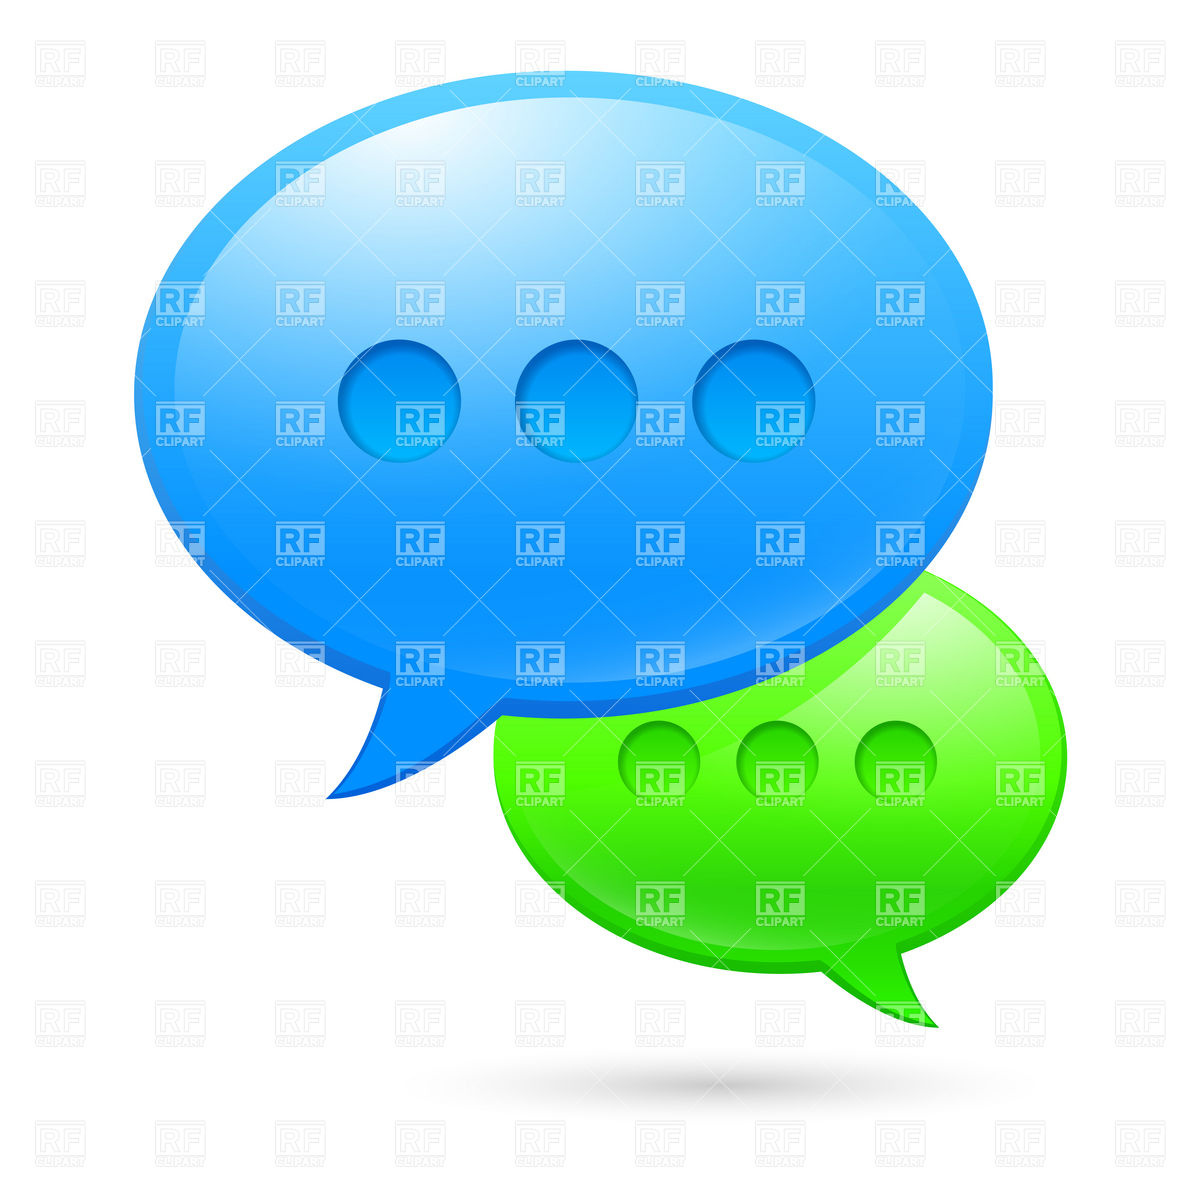 Message Cliparts | Free download best Message Cliparts on ClipArtMag com